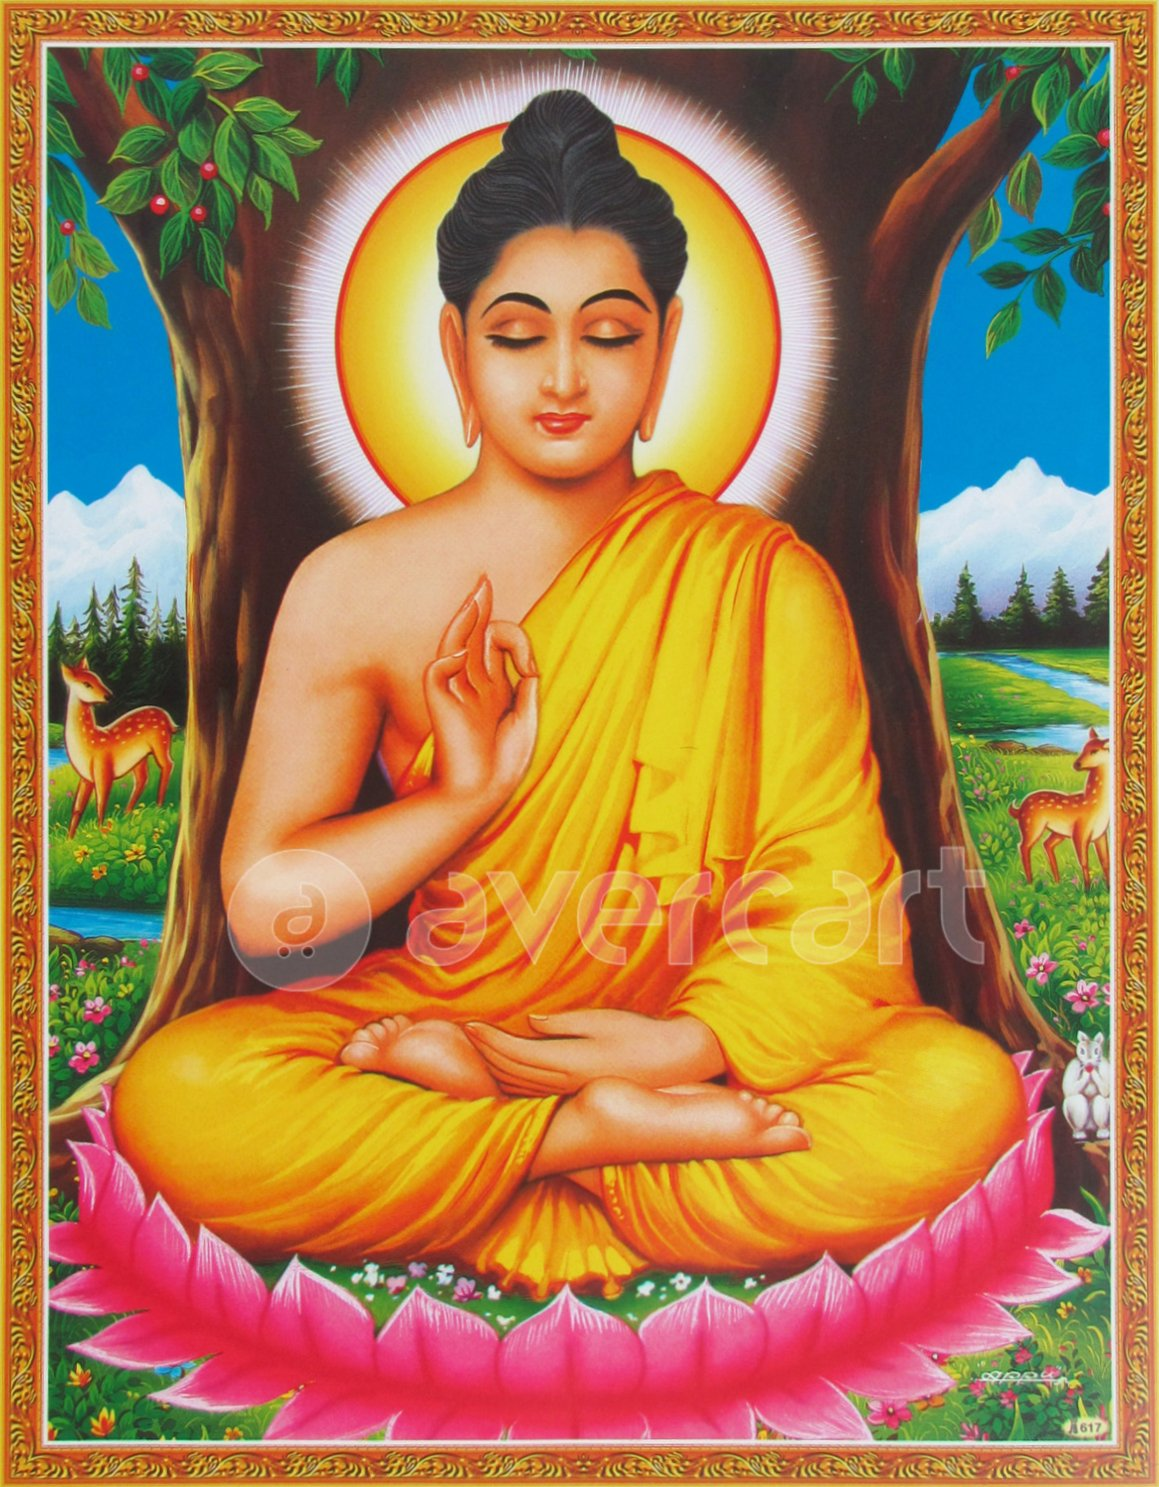 la dehesa buddhist dating site La dehesa in province of huelva (andalusia) is a city located in spain about 242 mi (or 390 km) south-west of madrid, the country's capital town.